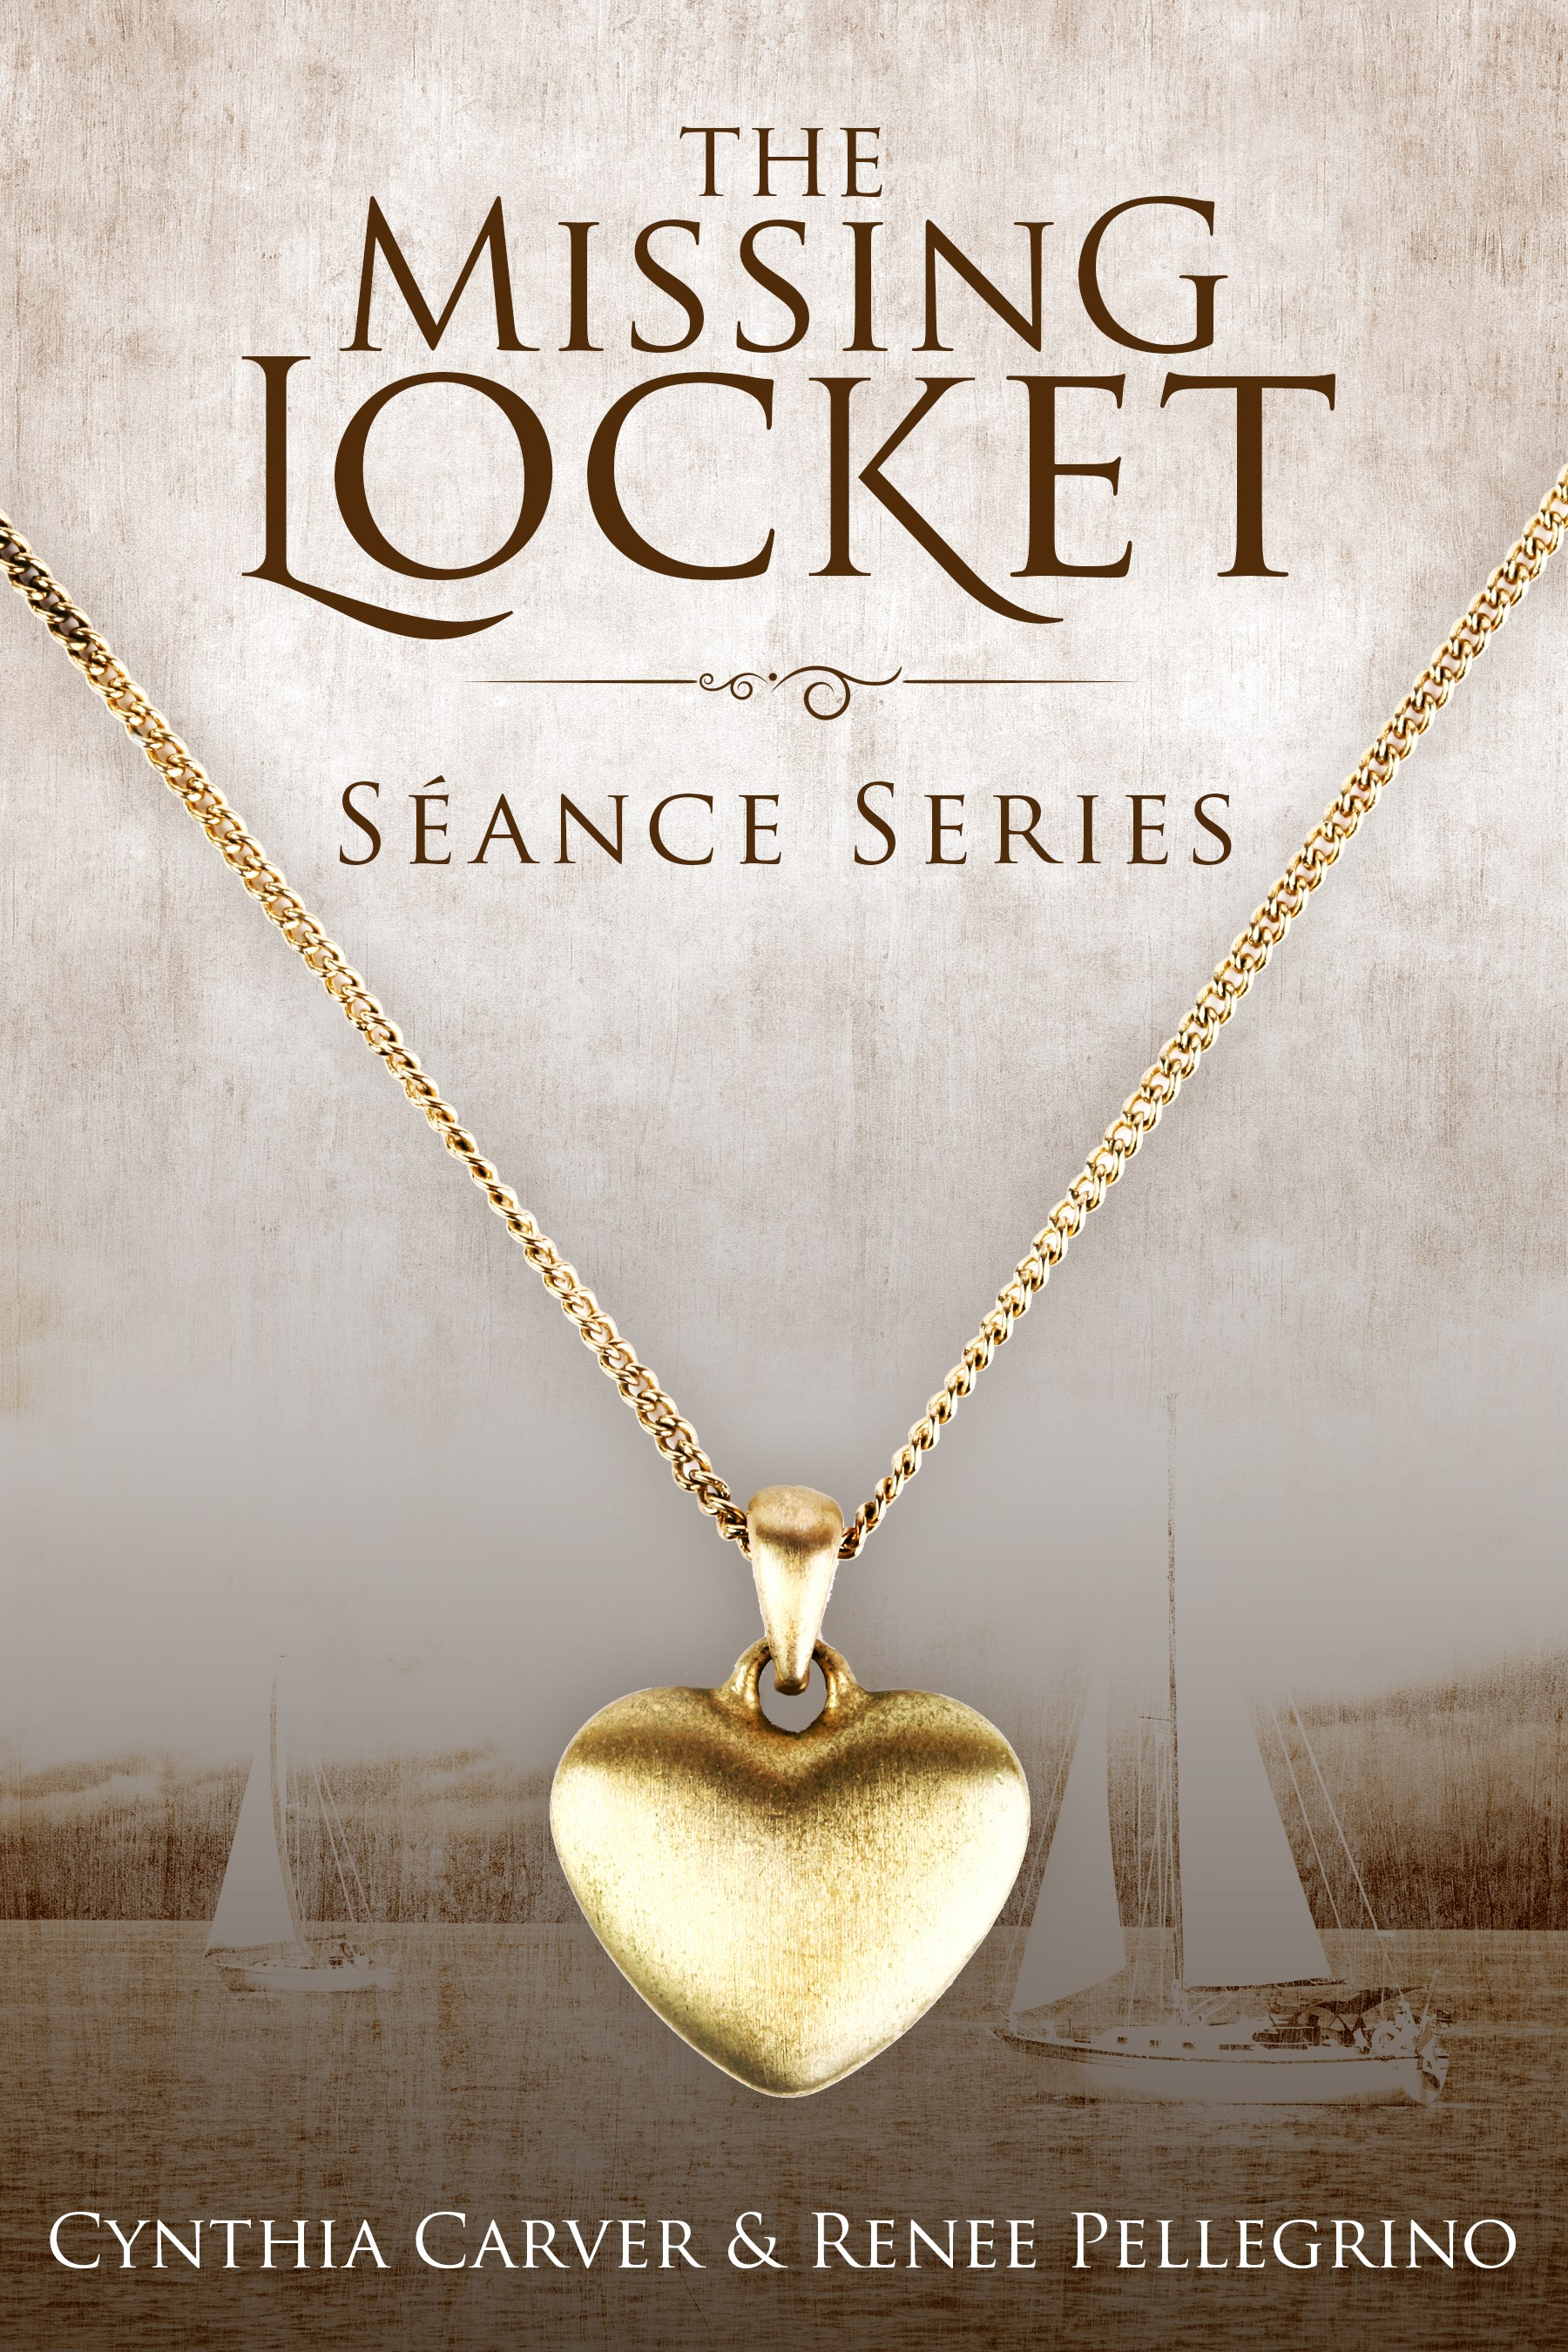 Why did I collaborate The Missing Locket